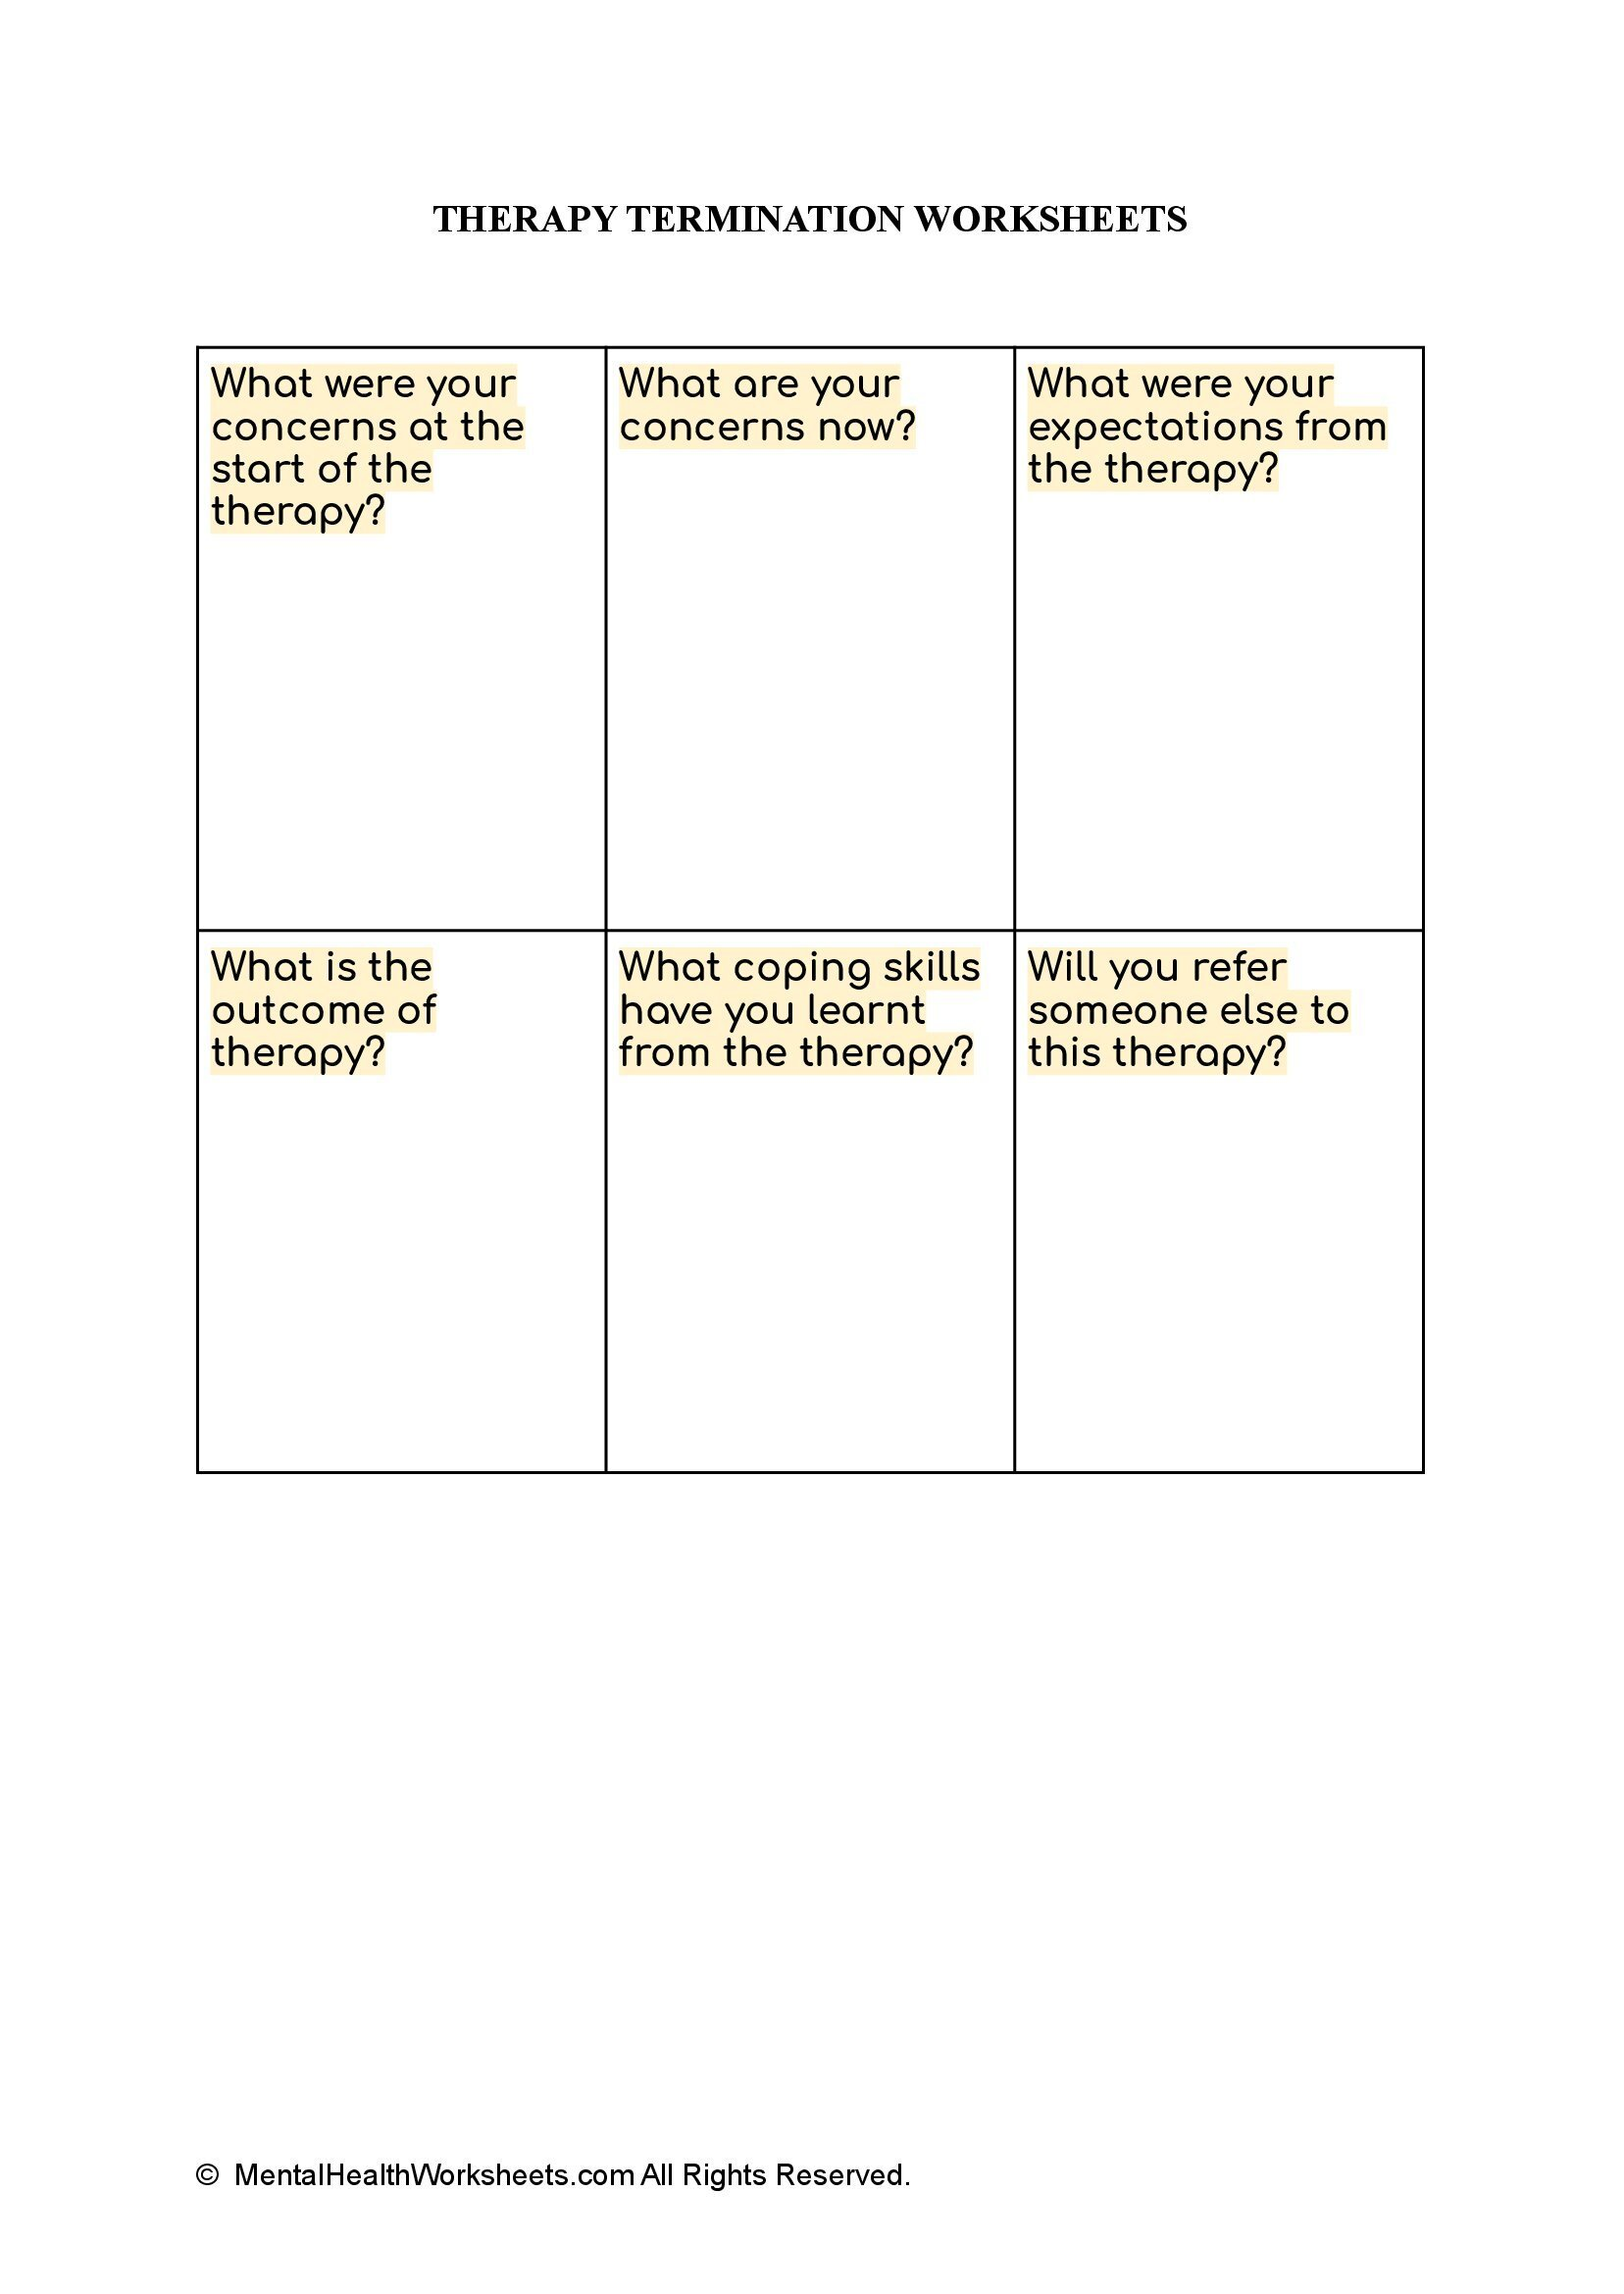 THERAPY TERMINATION WORKSHEETS